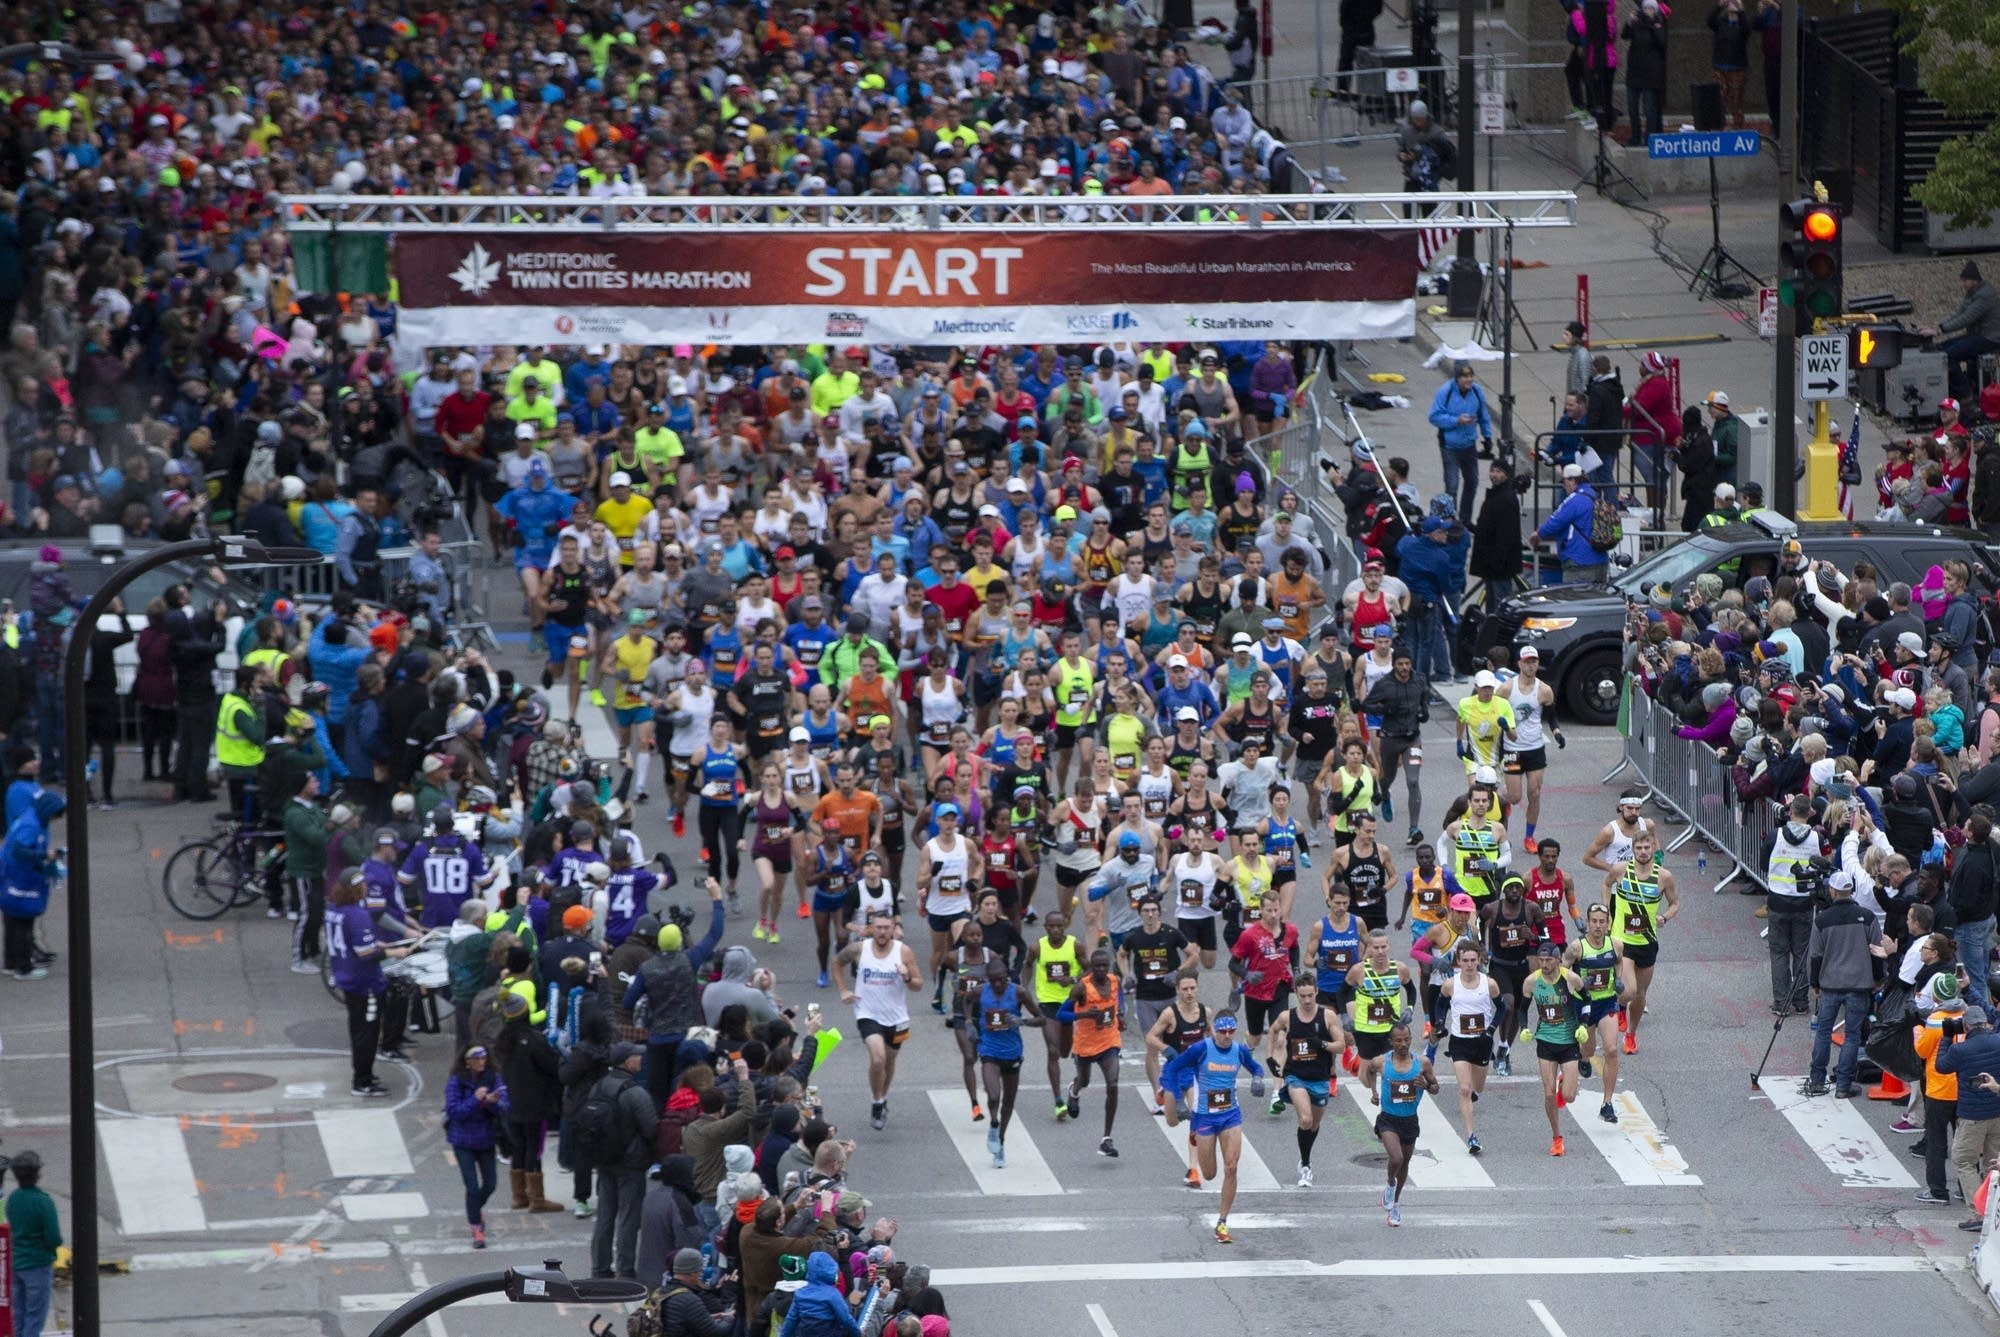 2020 Medtronic Twin Cities Marathon to be Held Virtually due to the pandemic